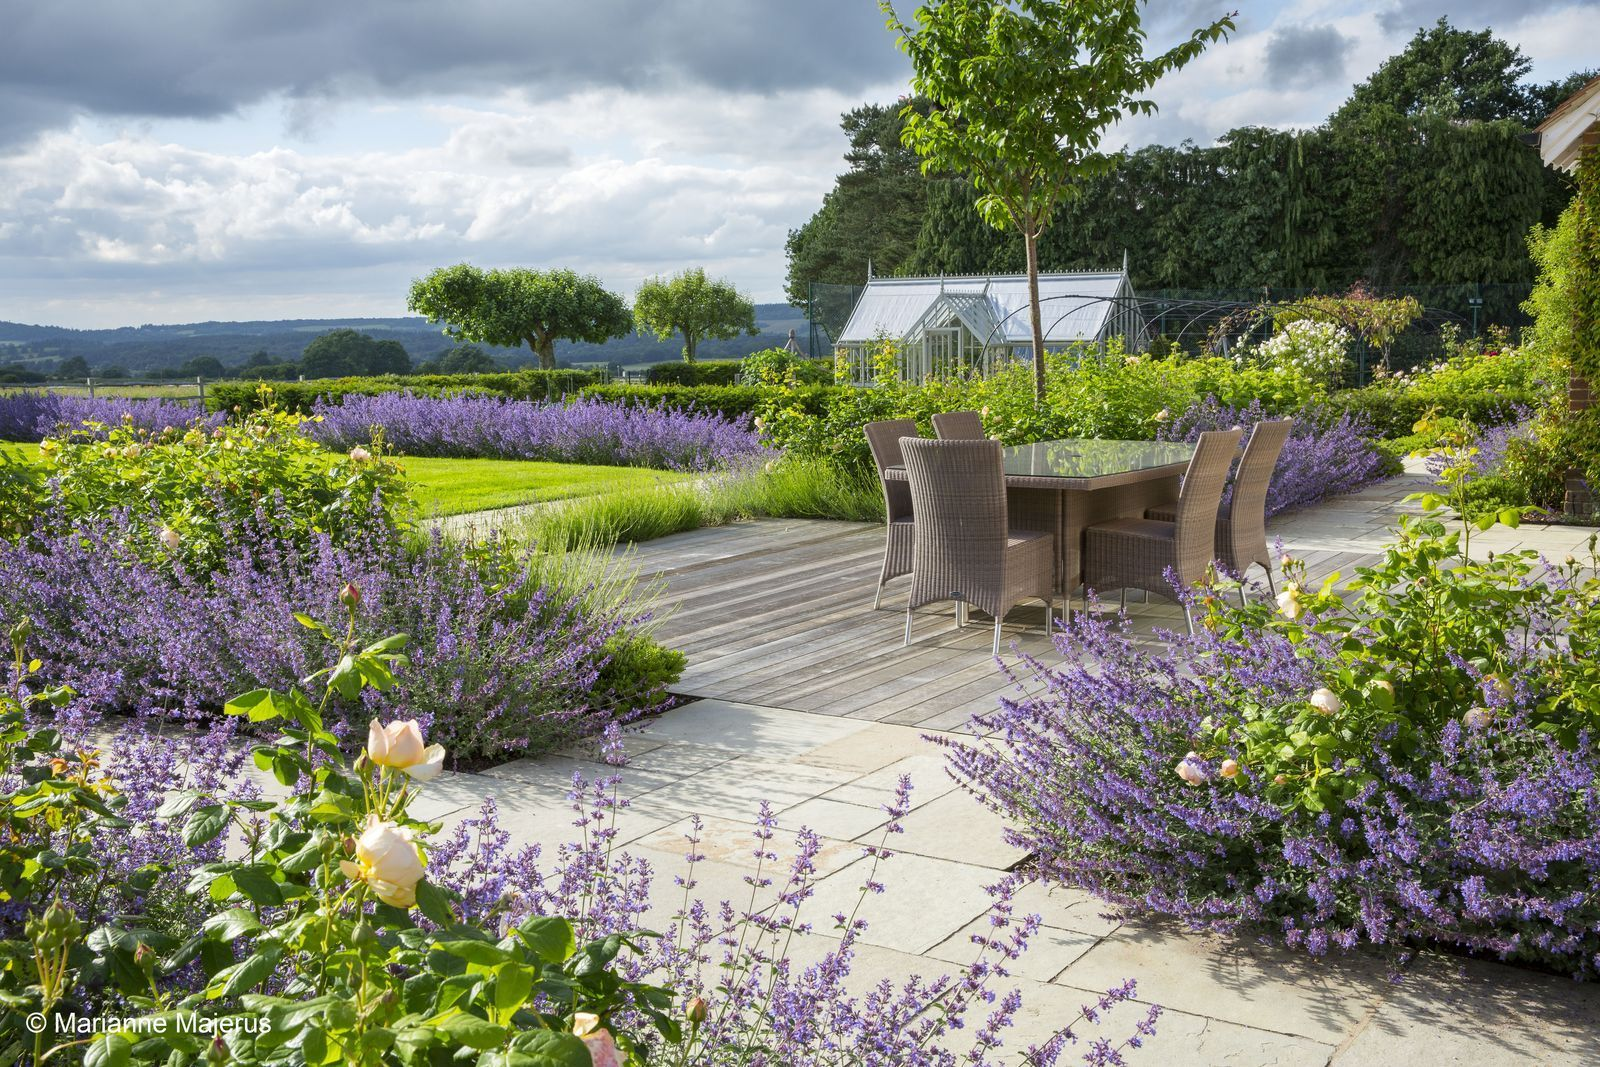 The Best Garden Designs And Landscapes Have Been Celebrated At The Sgd Awards In 2020 Garden Design Pictures Modern Garden Design Garden Design Layout